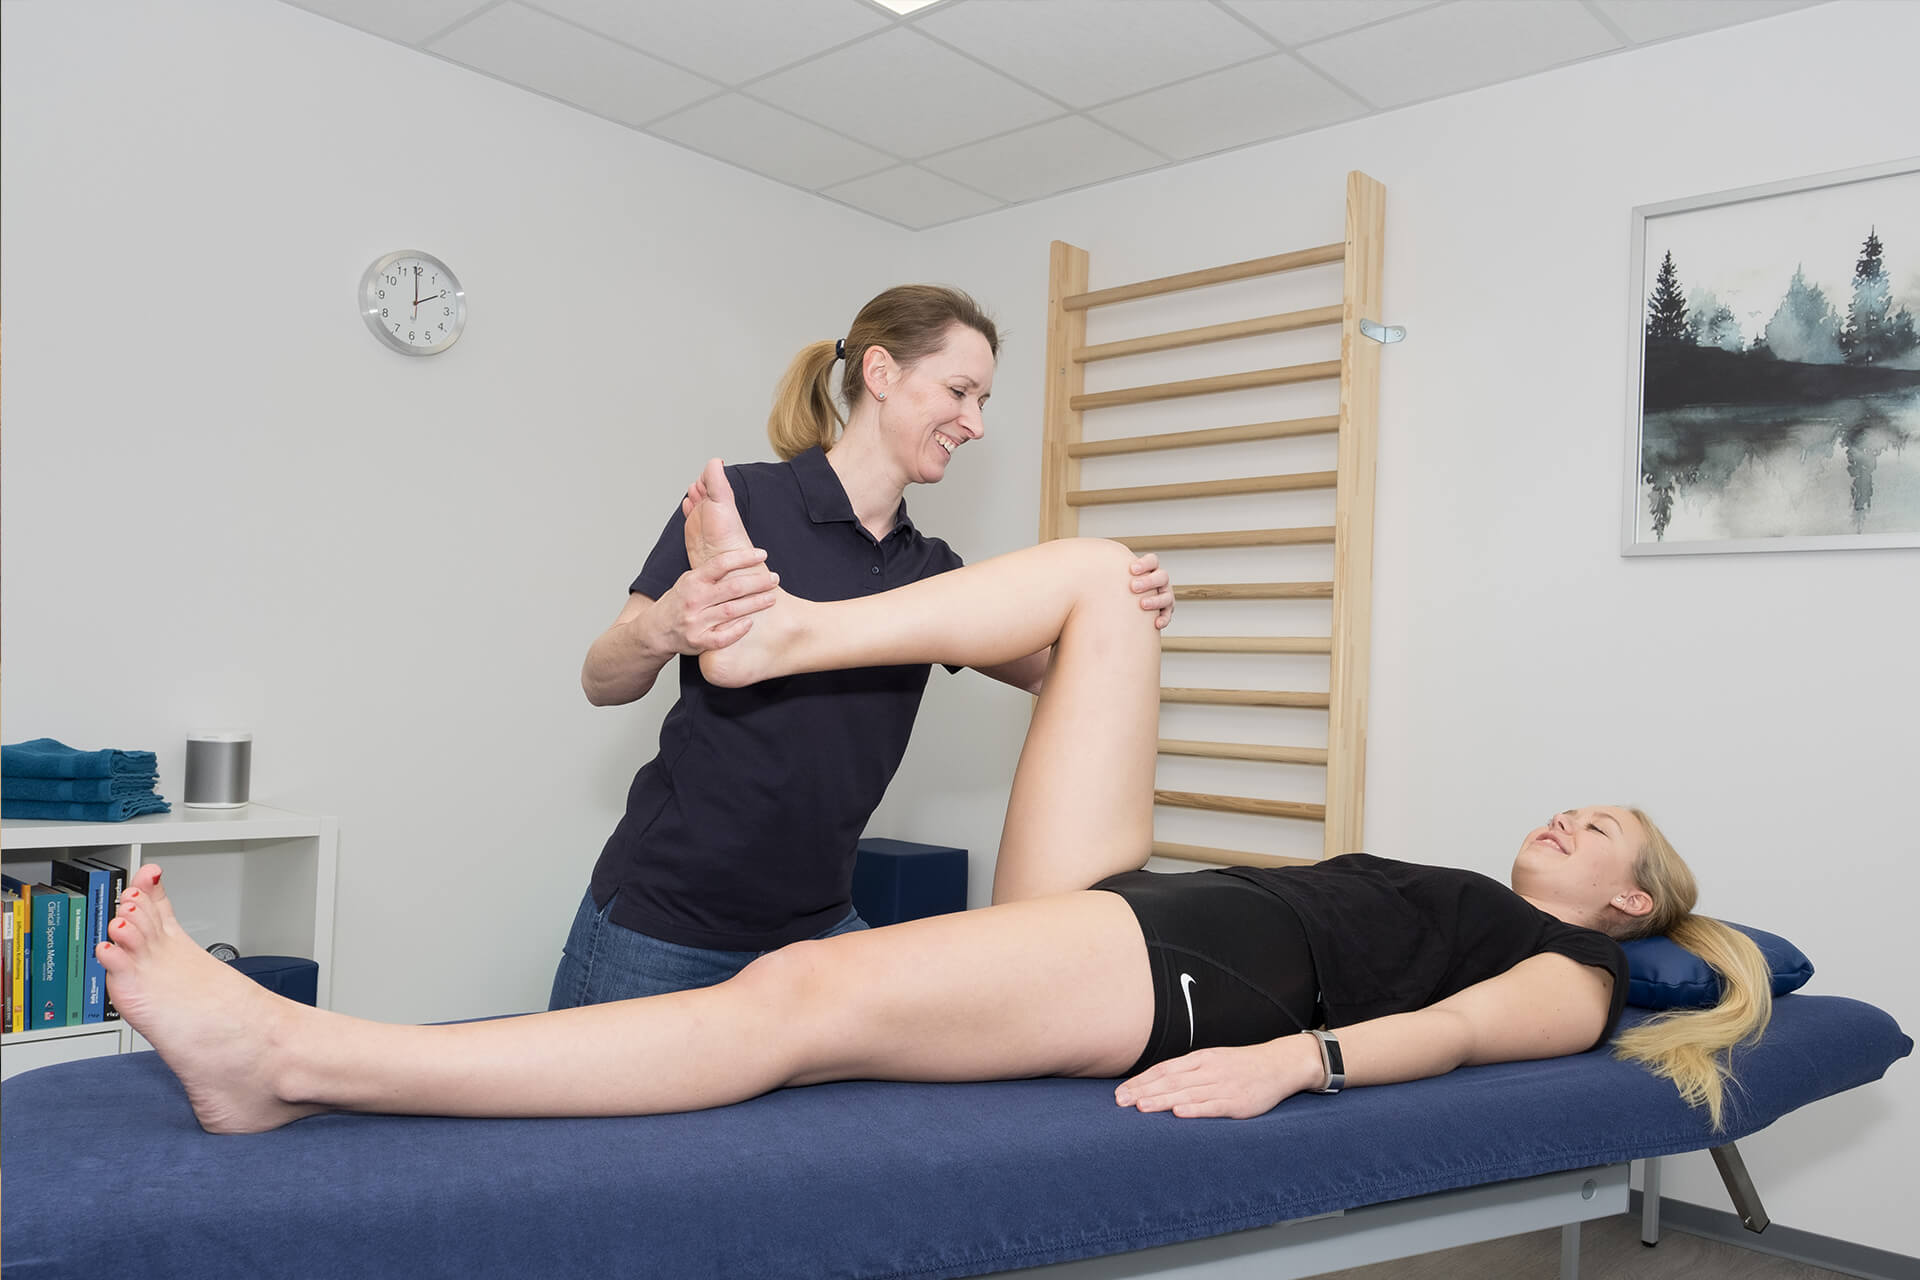 Physio Ambrassat Leistungen Physiotherapie